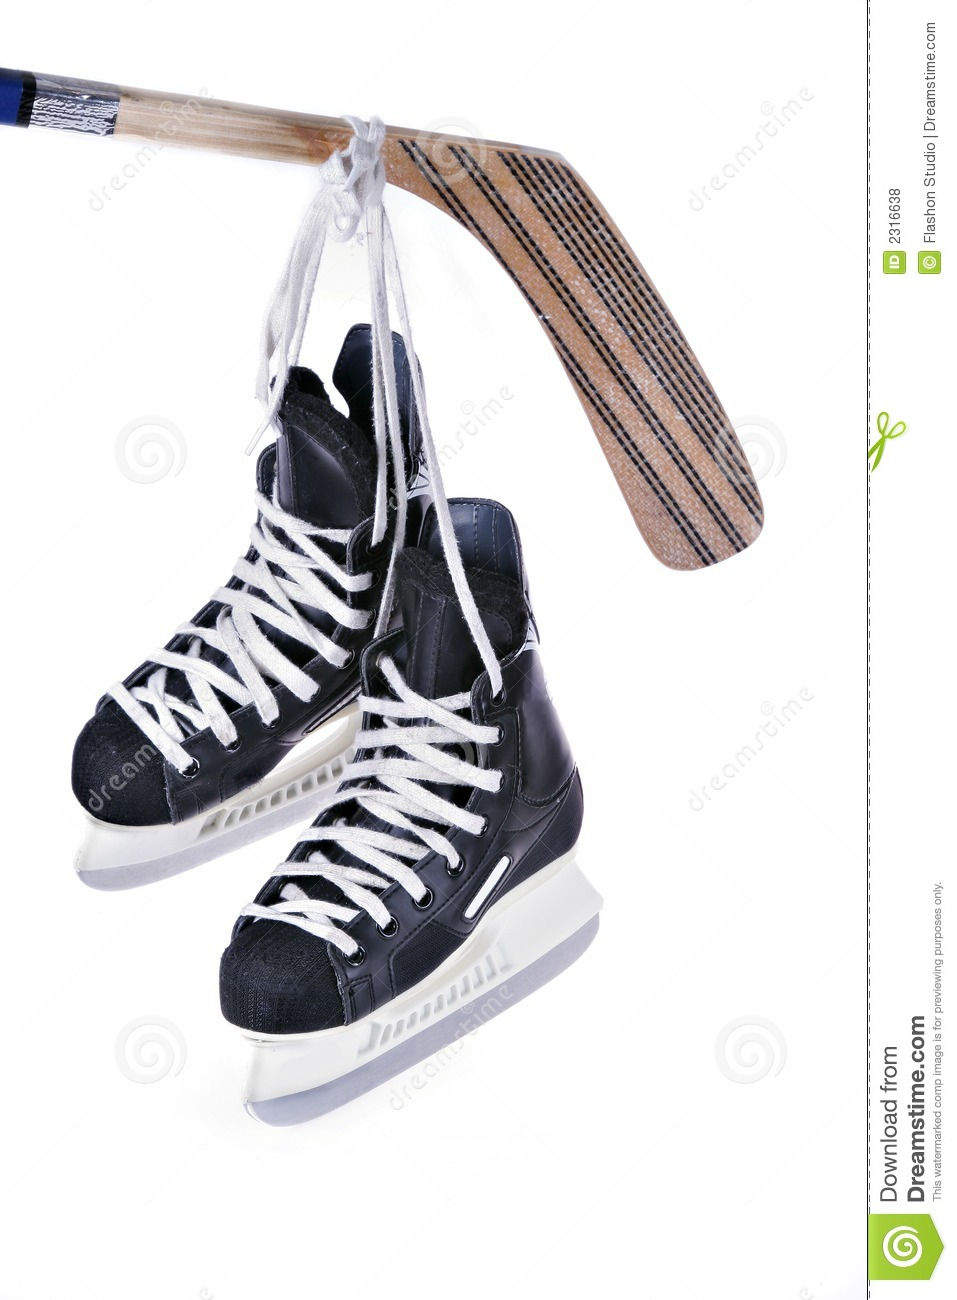 Hockey Skates Hanging Clipart.